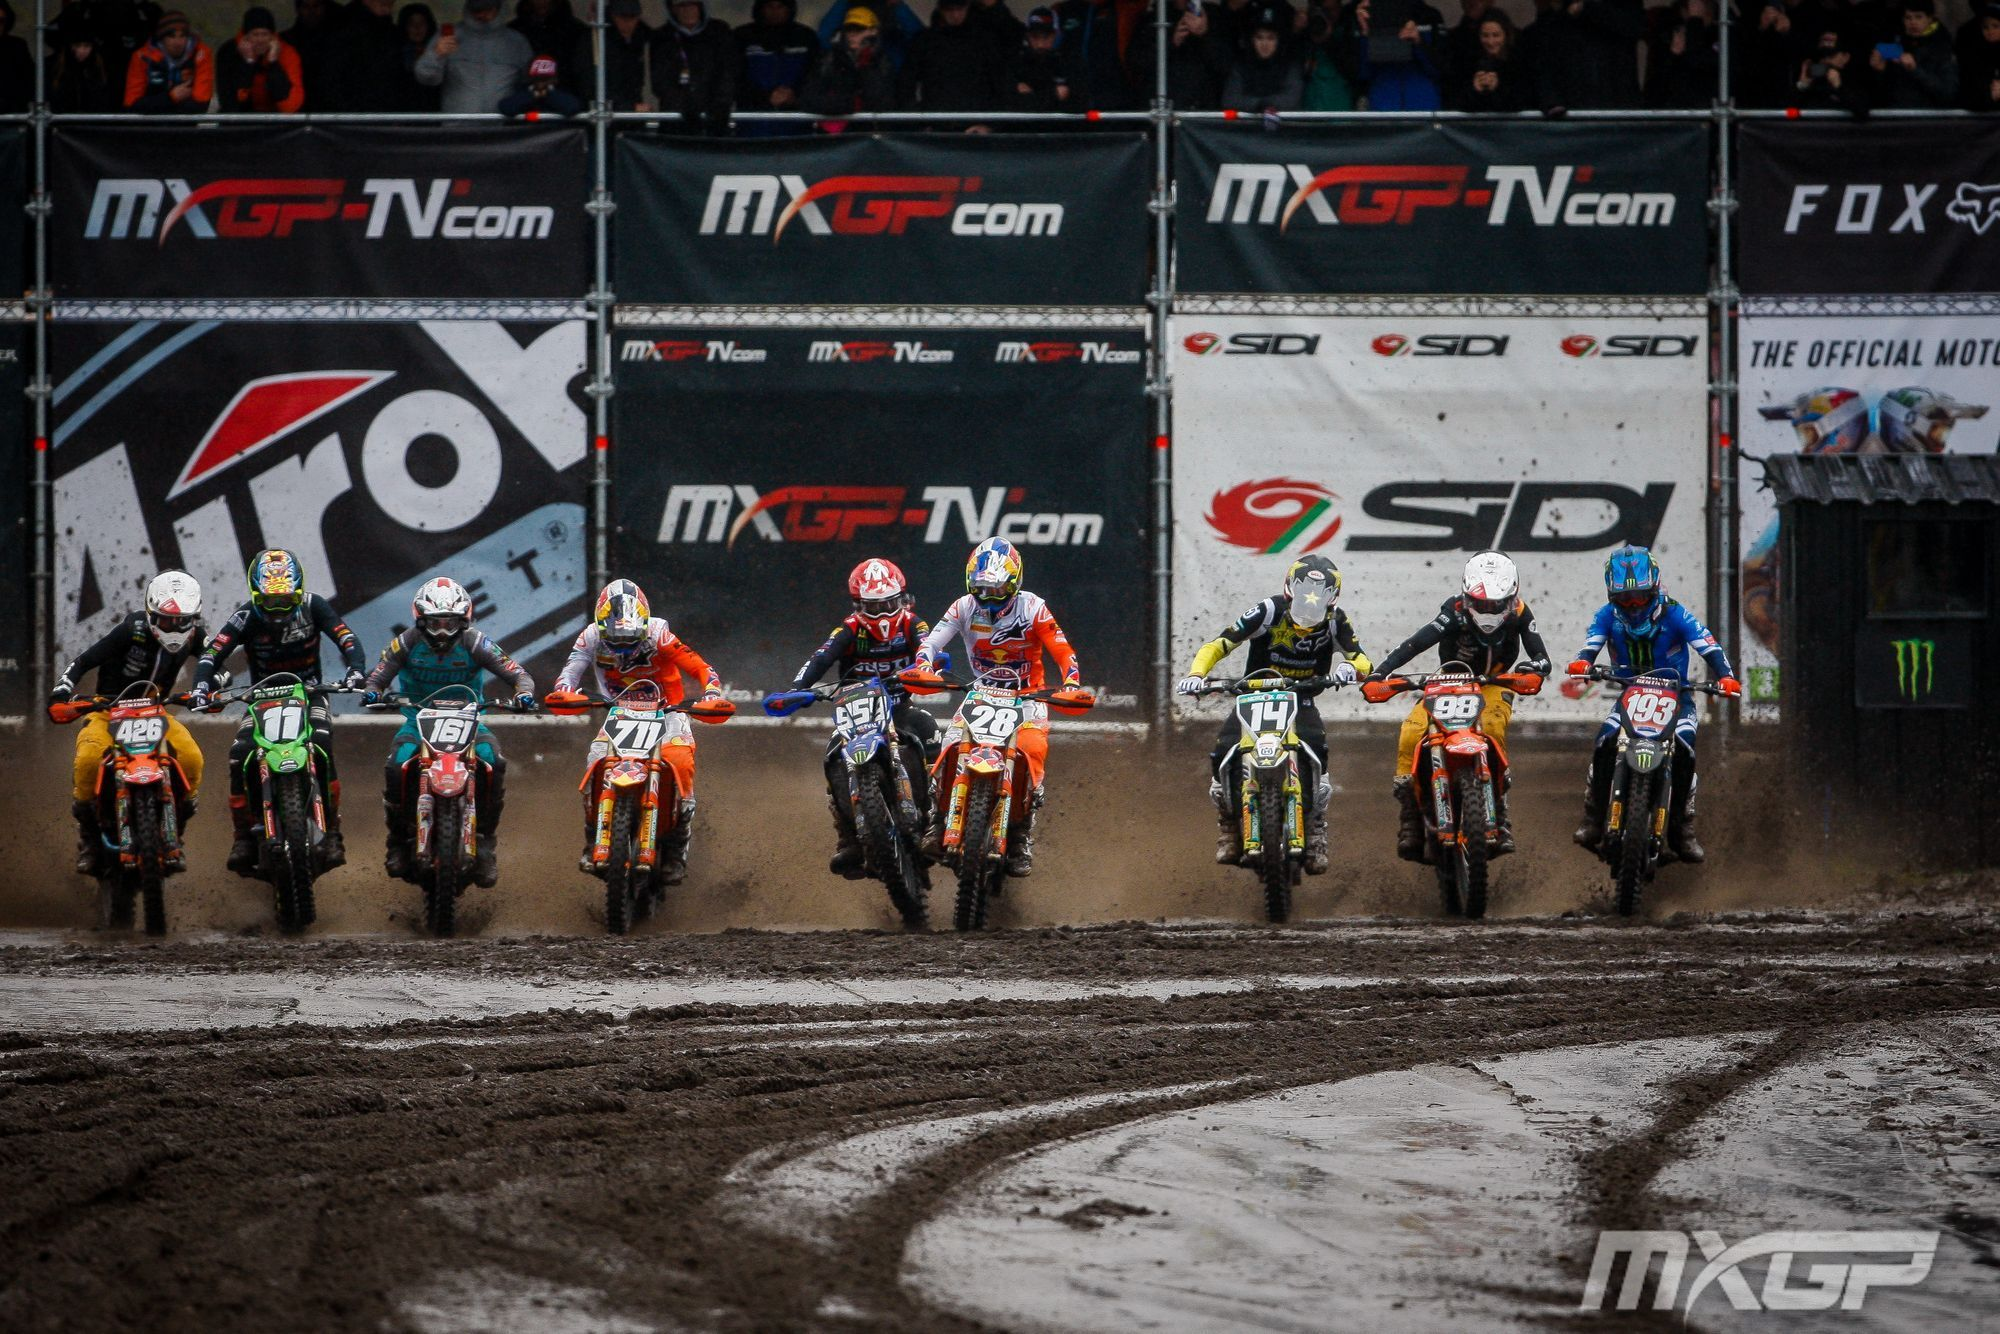 START-MX2-iI-MOTOCROSS-GP-2-NL-2020.jpg#asset:27493